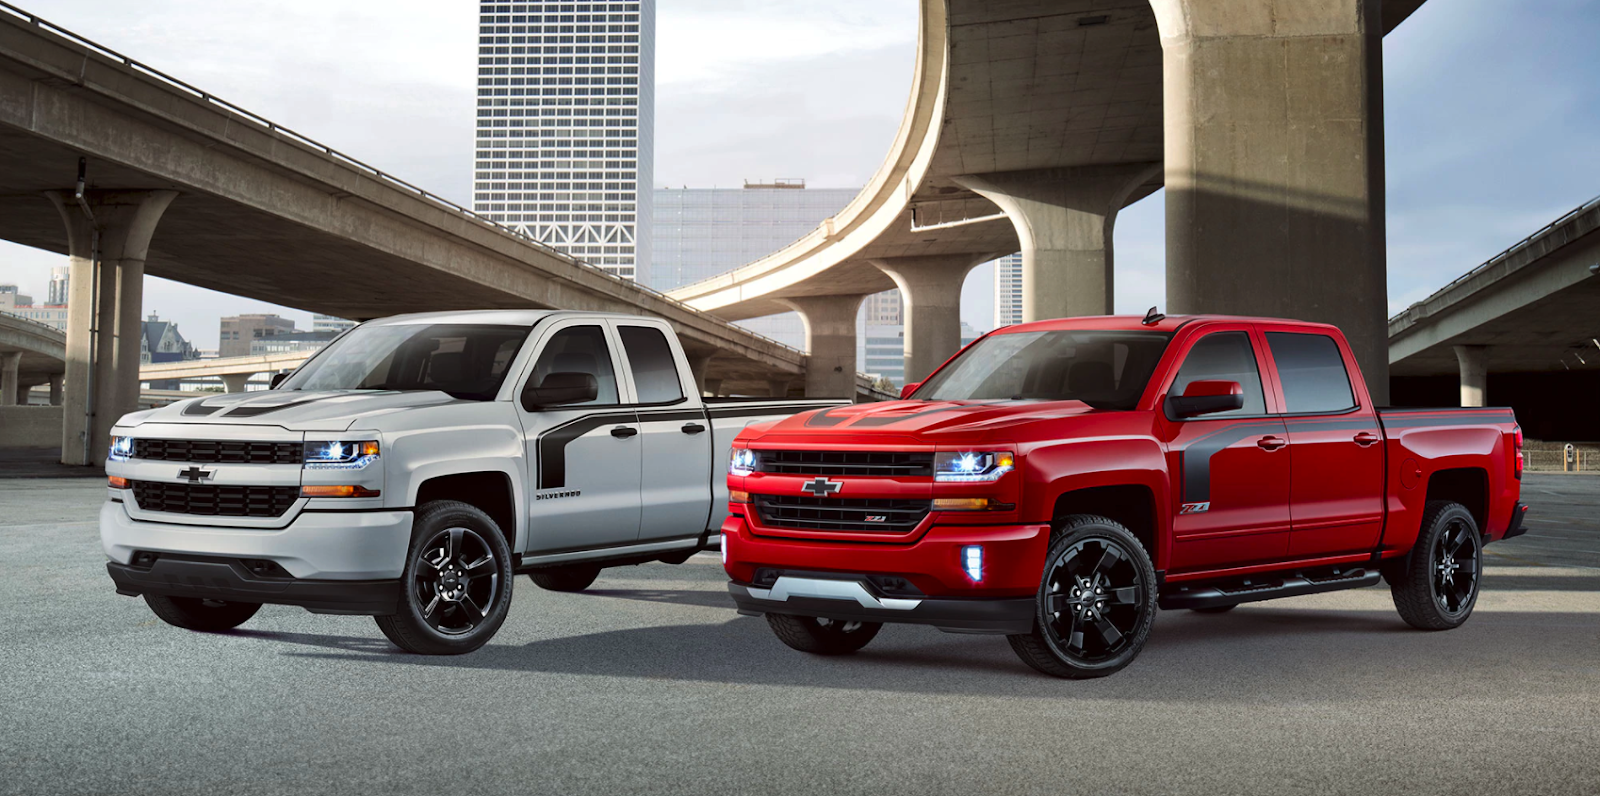 The Silverado 1500 Rally 1 And 2 Editions Are Available In Black Summit White Red Hot Silver Ice Metallic These Special Edition Trucks Put A